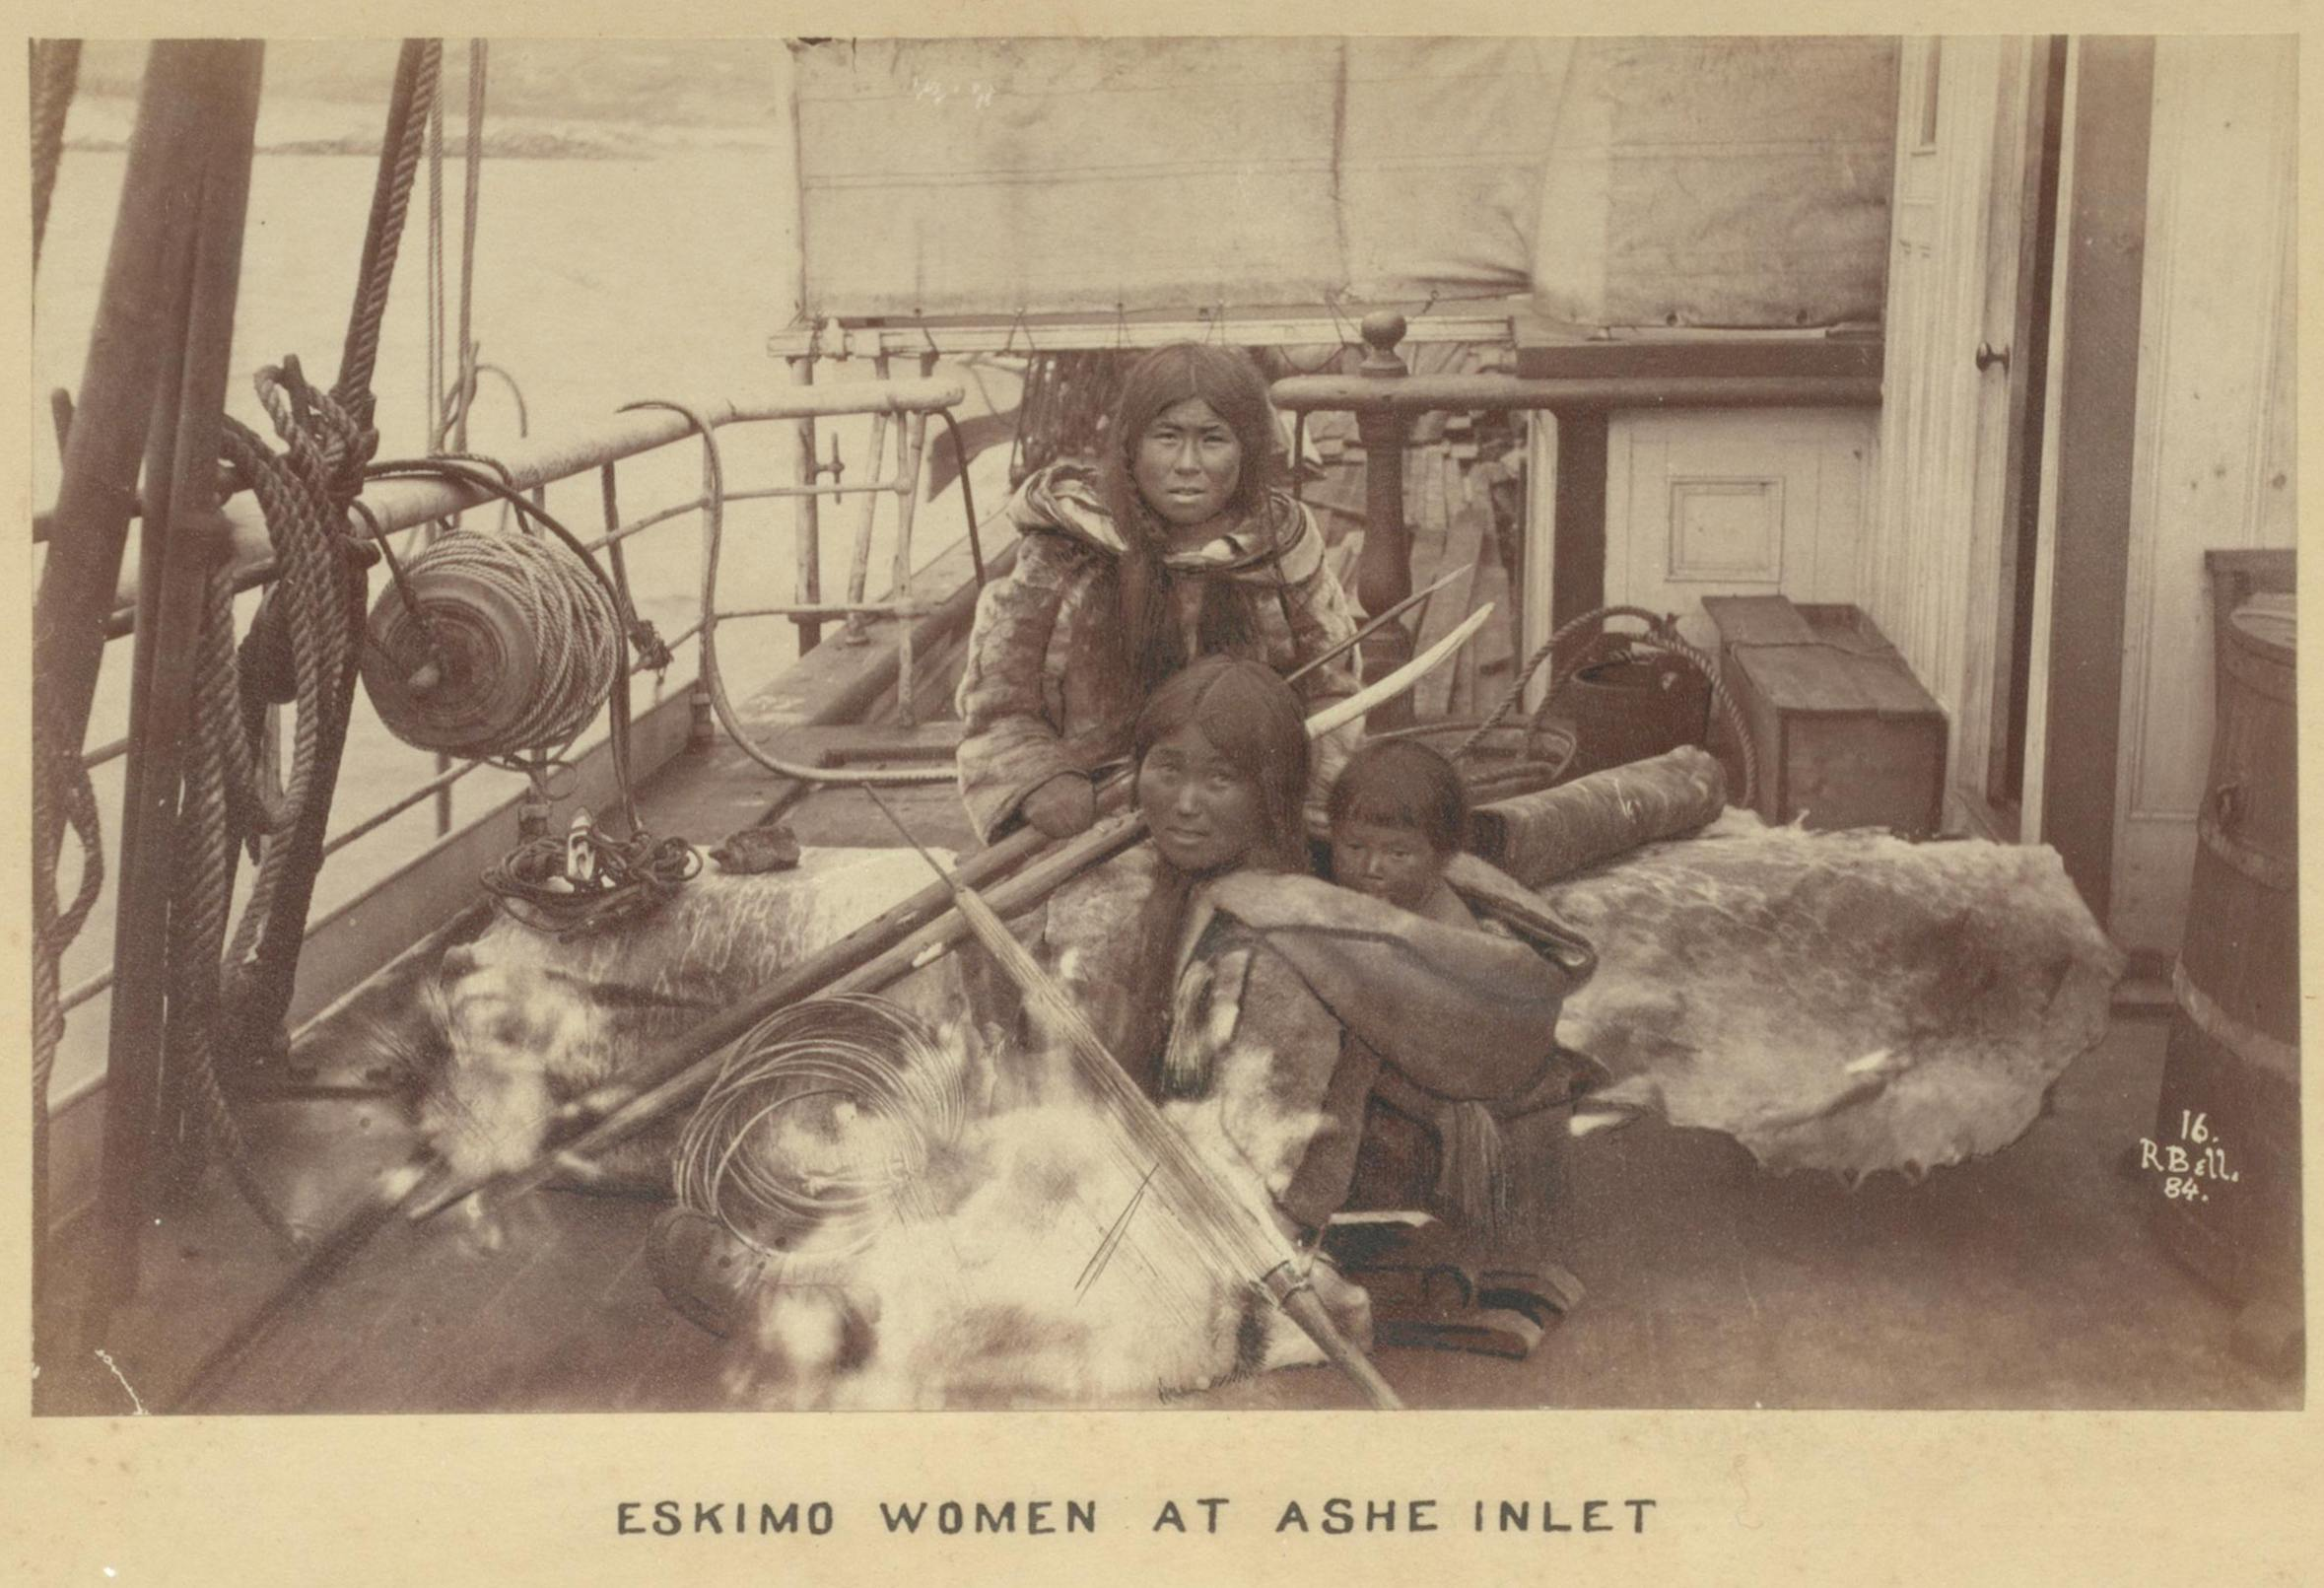 Inuit people at Ashe Inlet, Canada